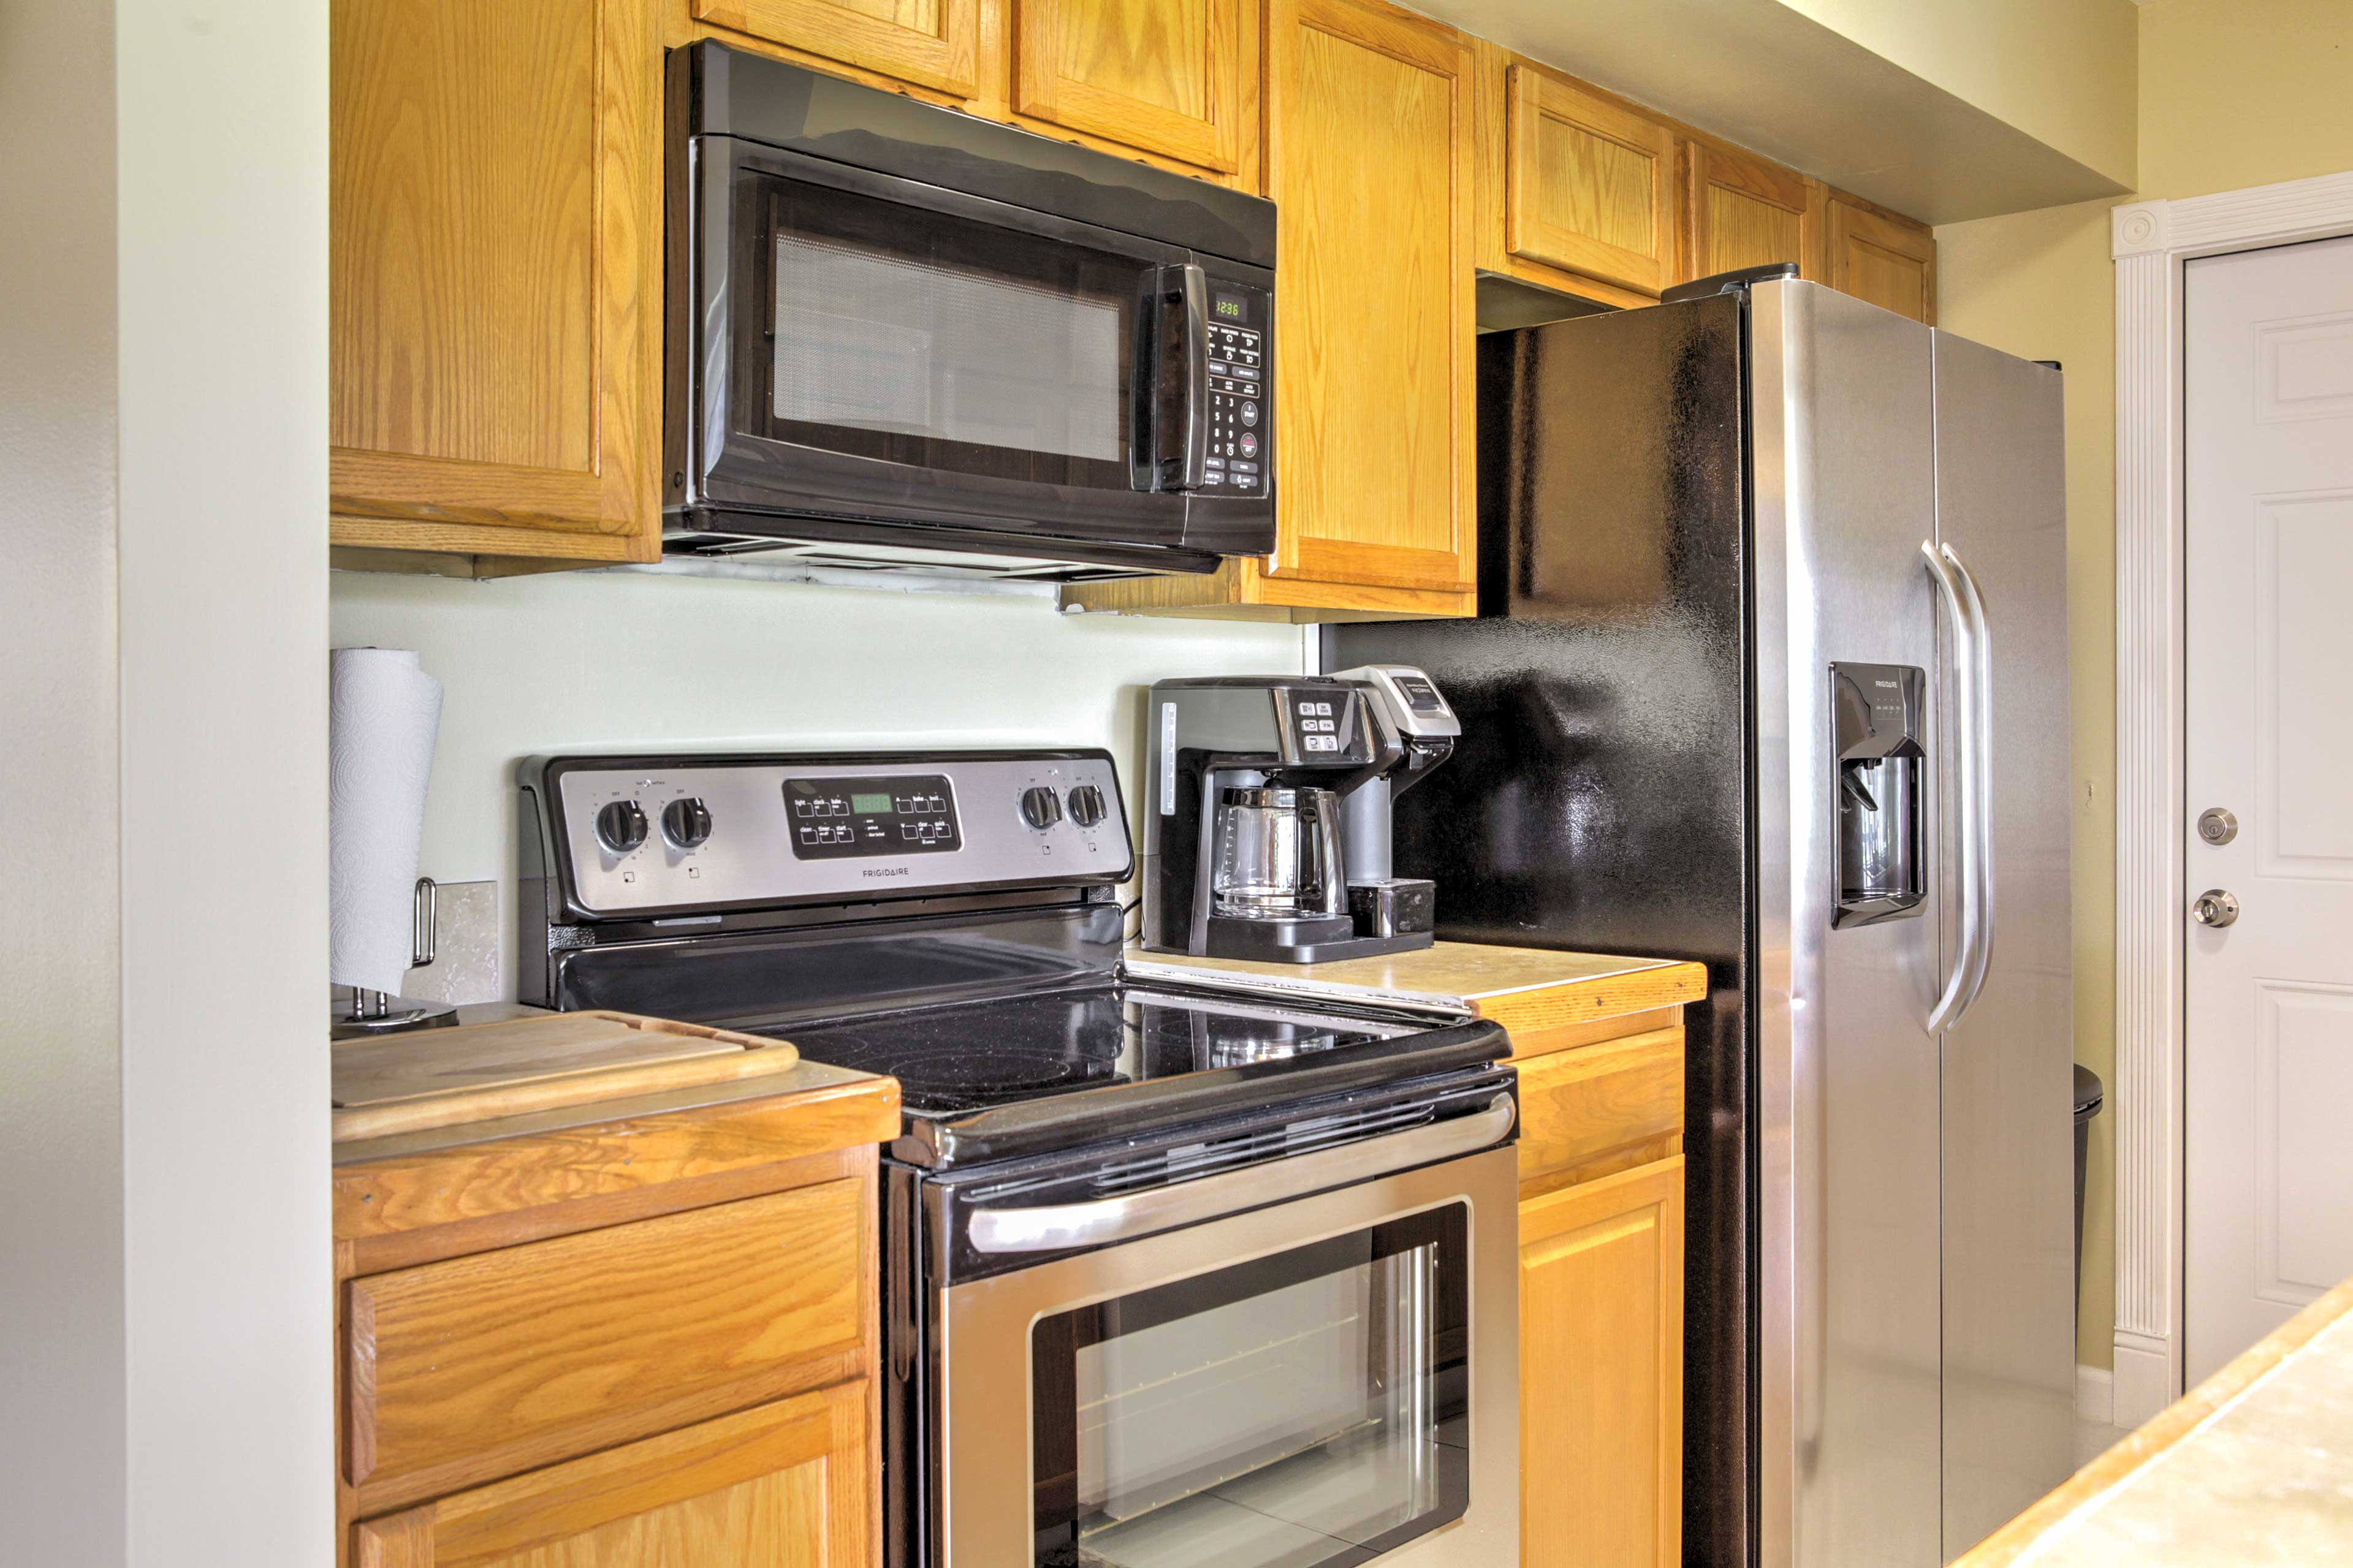 The kitchen offers new stainless steel appliances.